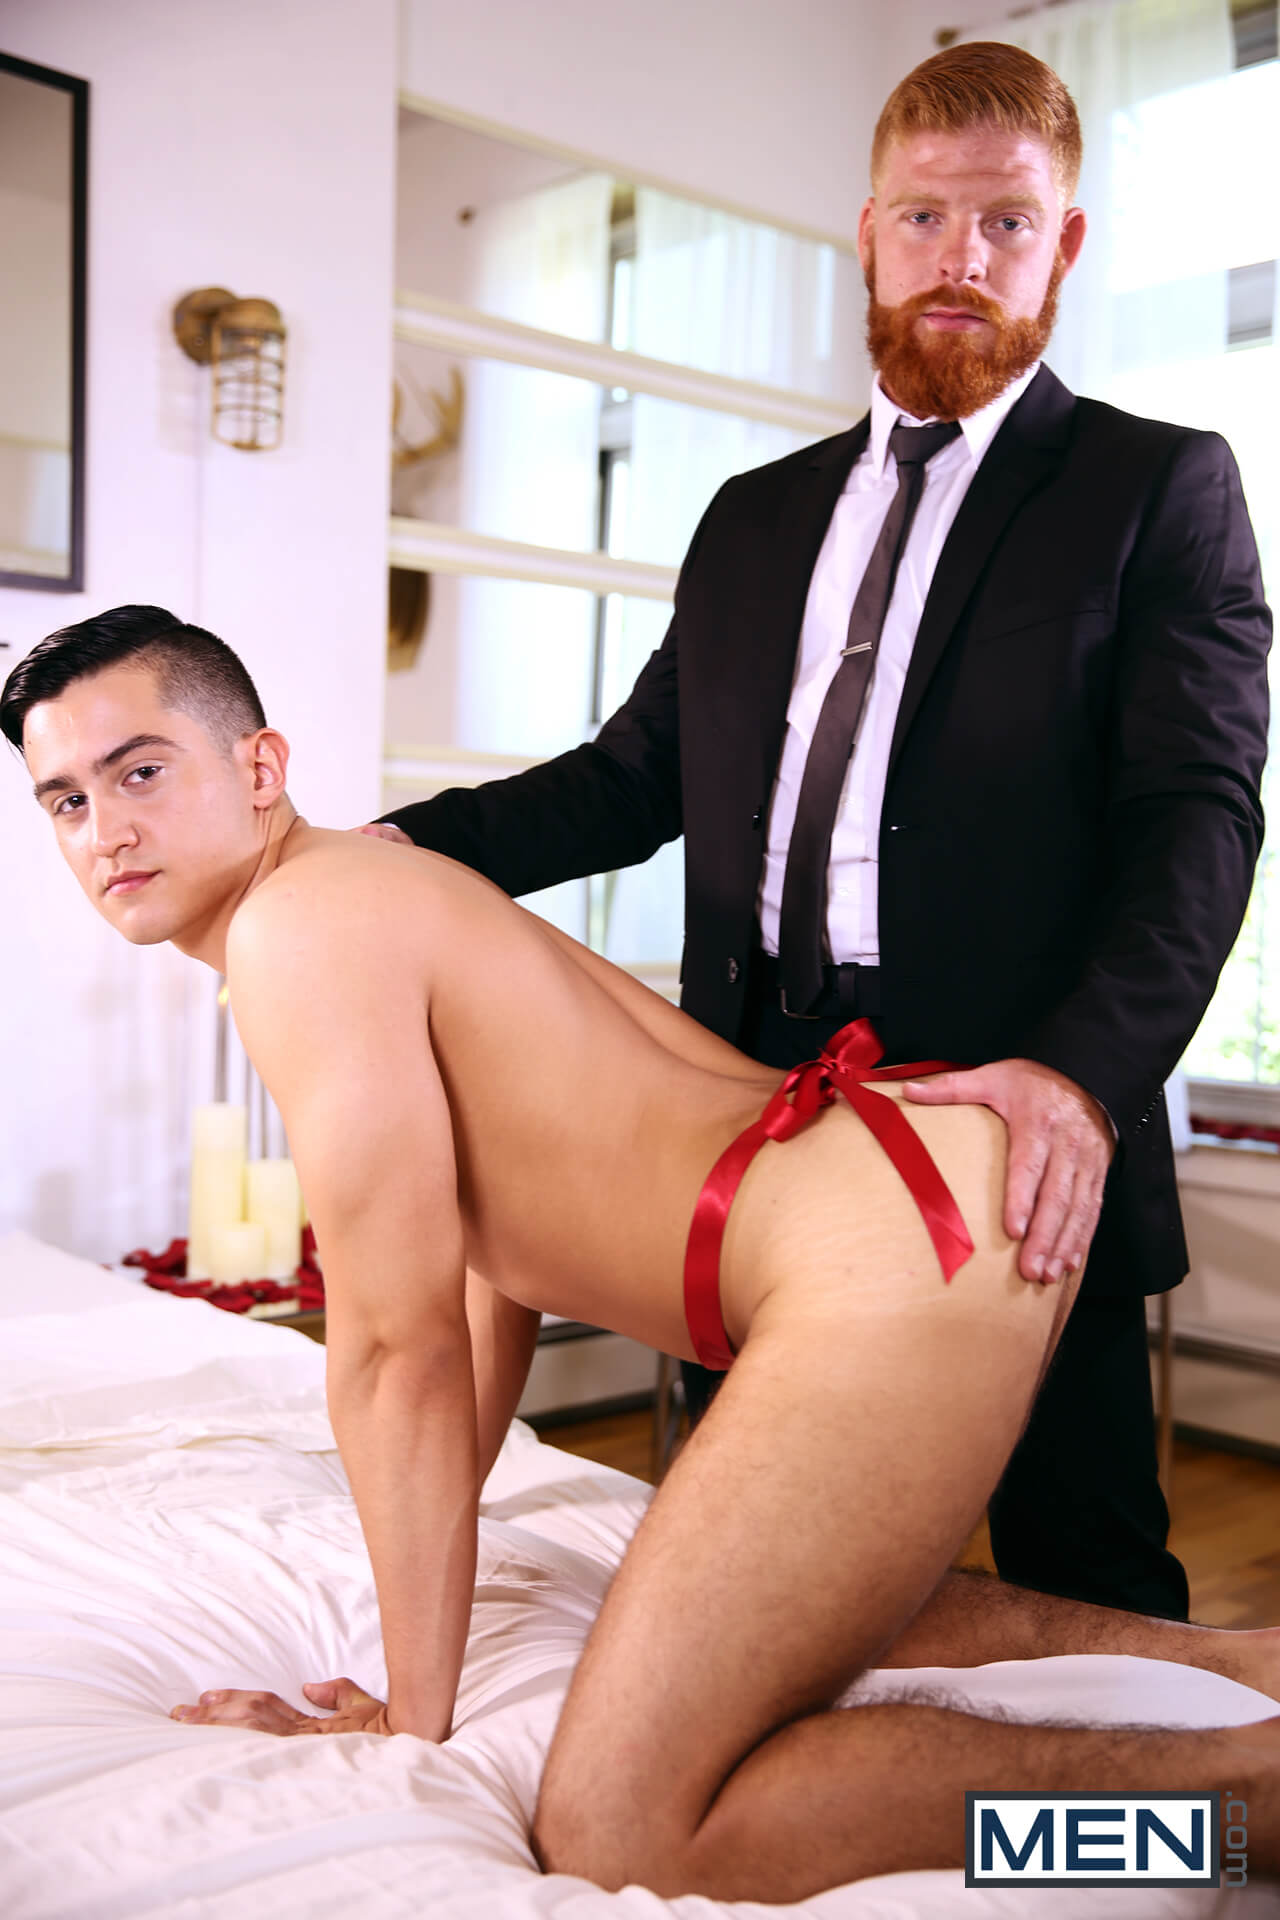 men gods of men surprise gift bennett anthony jacob ladder gay porn blog image 9